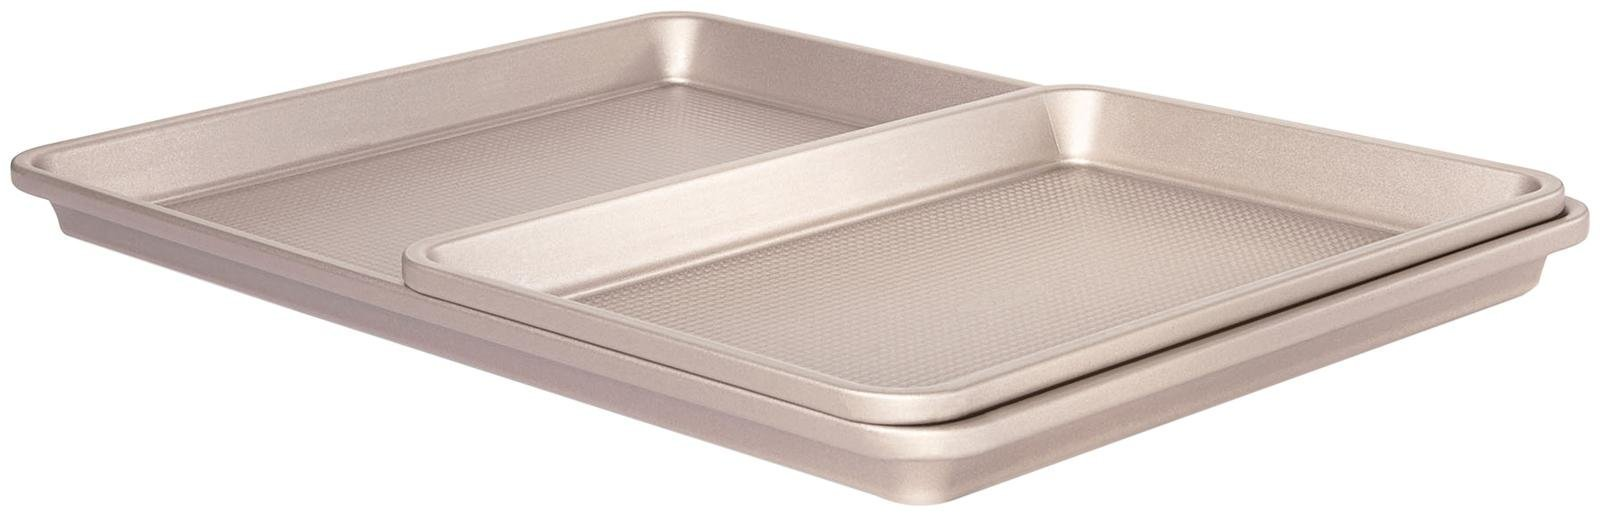 Non-Stick Pro 2-Piece Sheet Pan Set